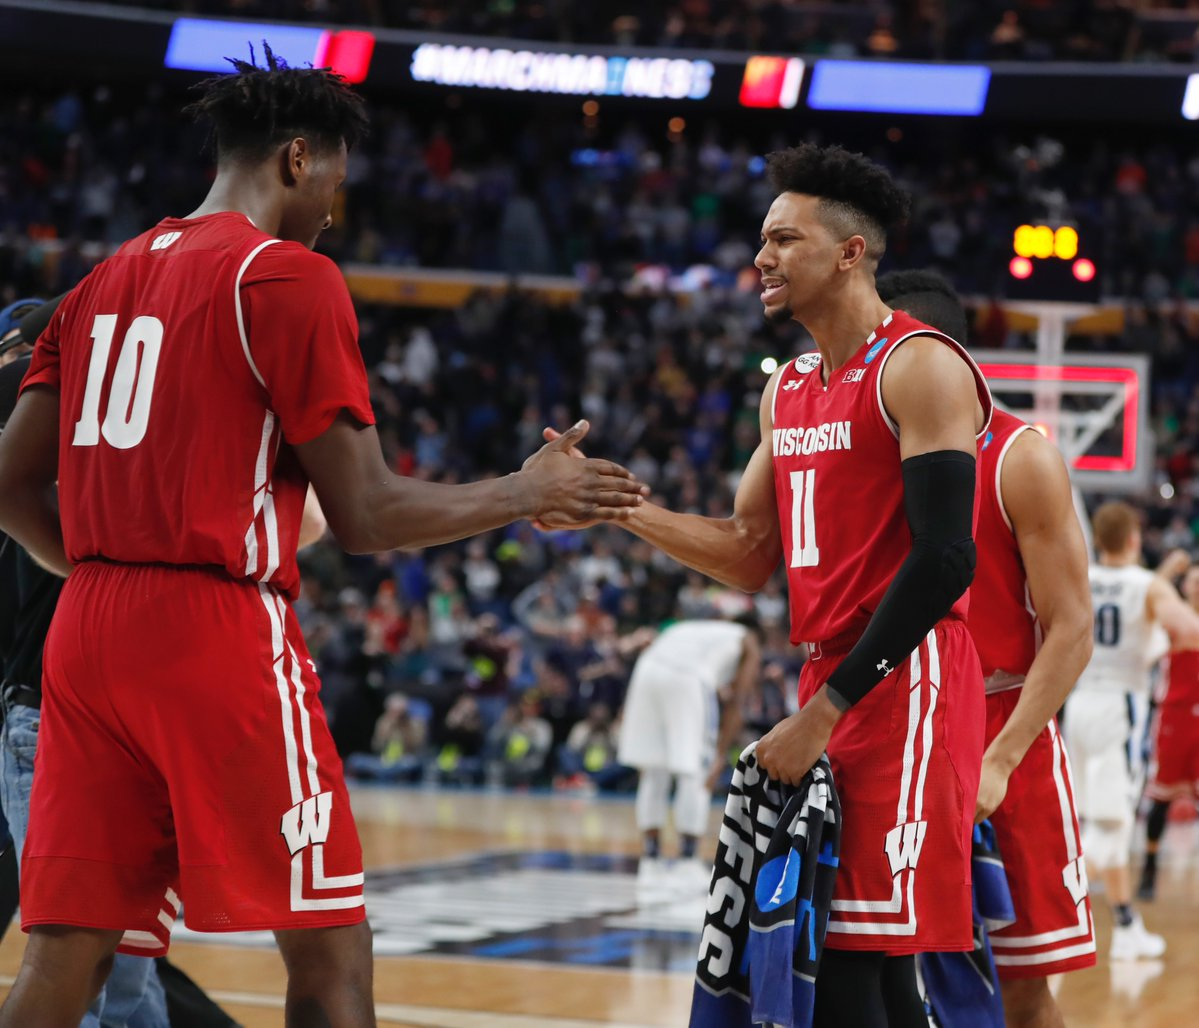 Wisconsin's Nigel Hayes (10) and Jordan Hill celebrate their victory over Villanova in the second round of the NCAA Tournament. (Harry Scull Jr./Buffalo News)